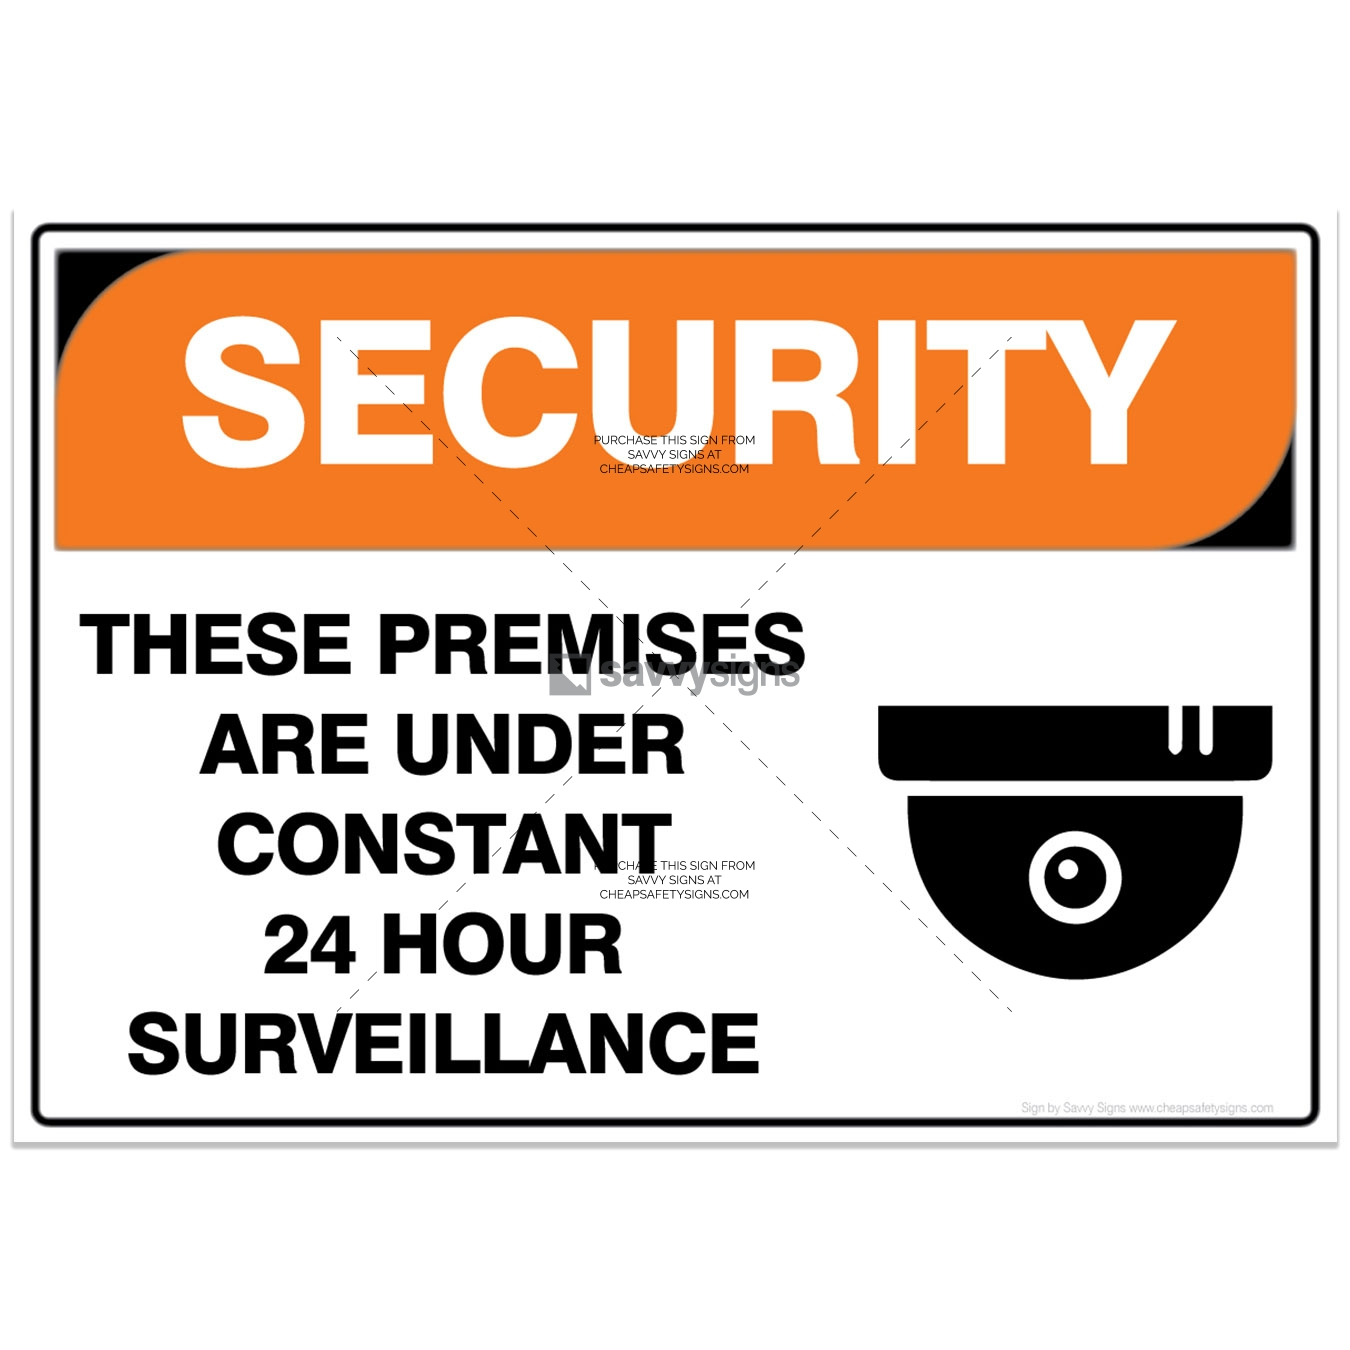 SSSEC3022-SECURITY-Workplace-Safety-Signs_Savvy-Signs_v3